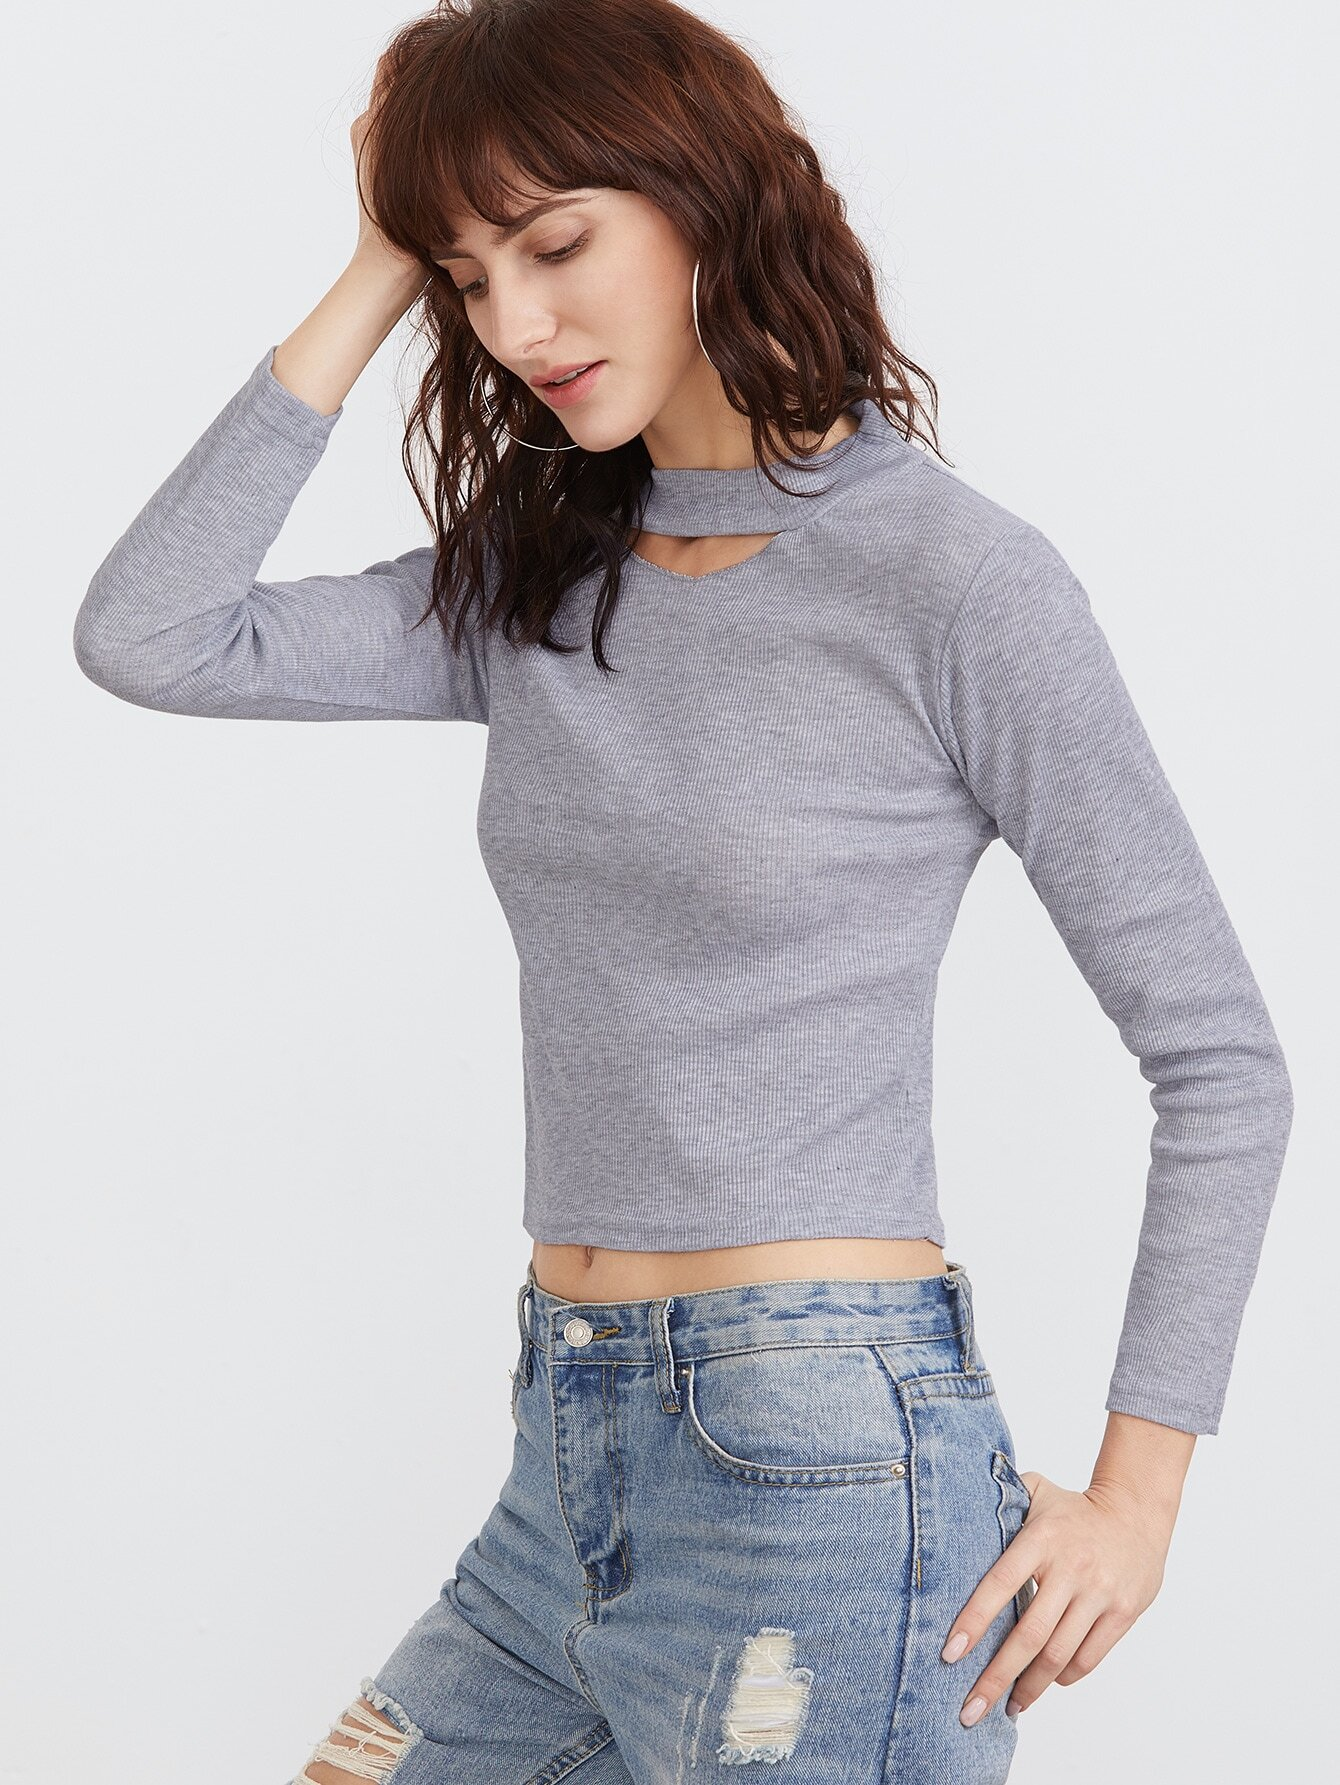 Light Grey Cut Out Neck Crop Tight T Shirtfor Women Romwe